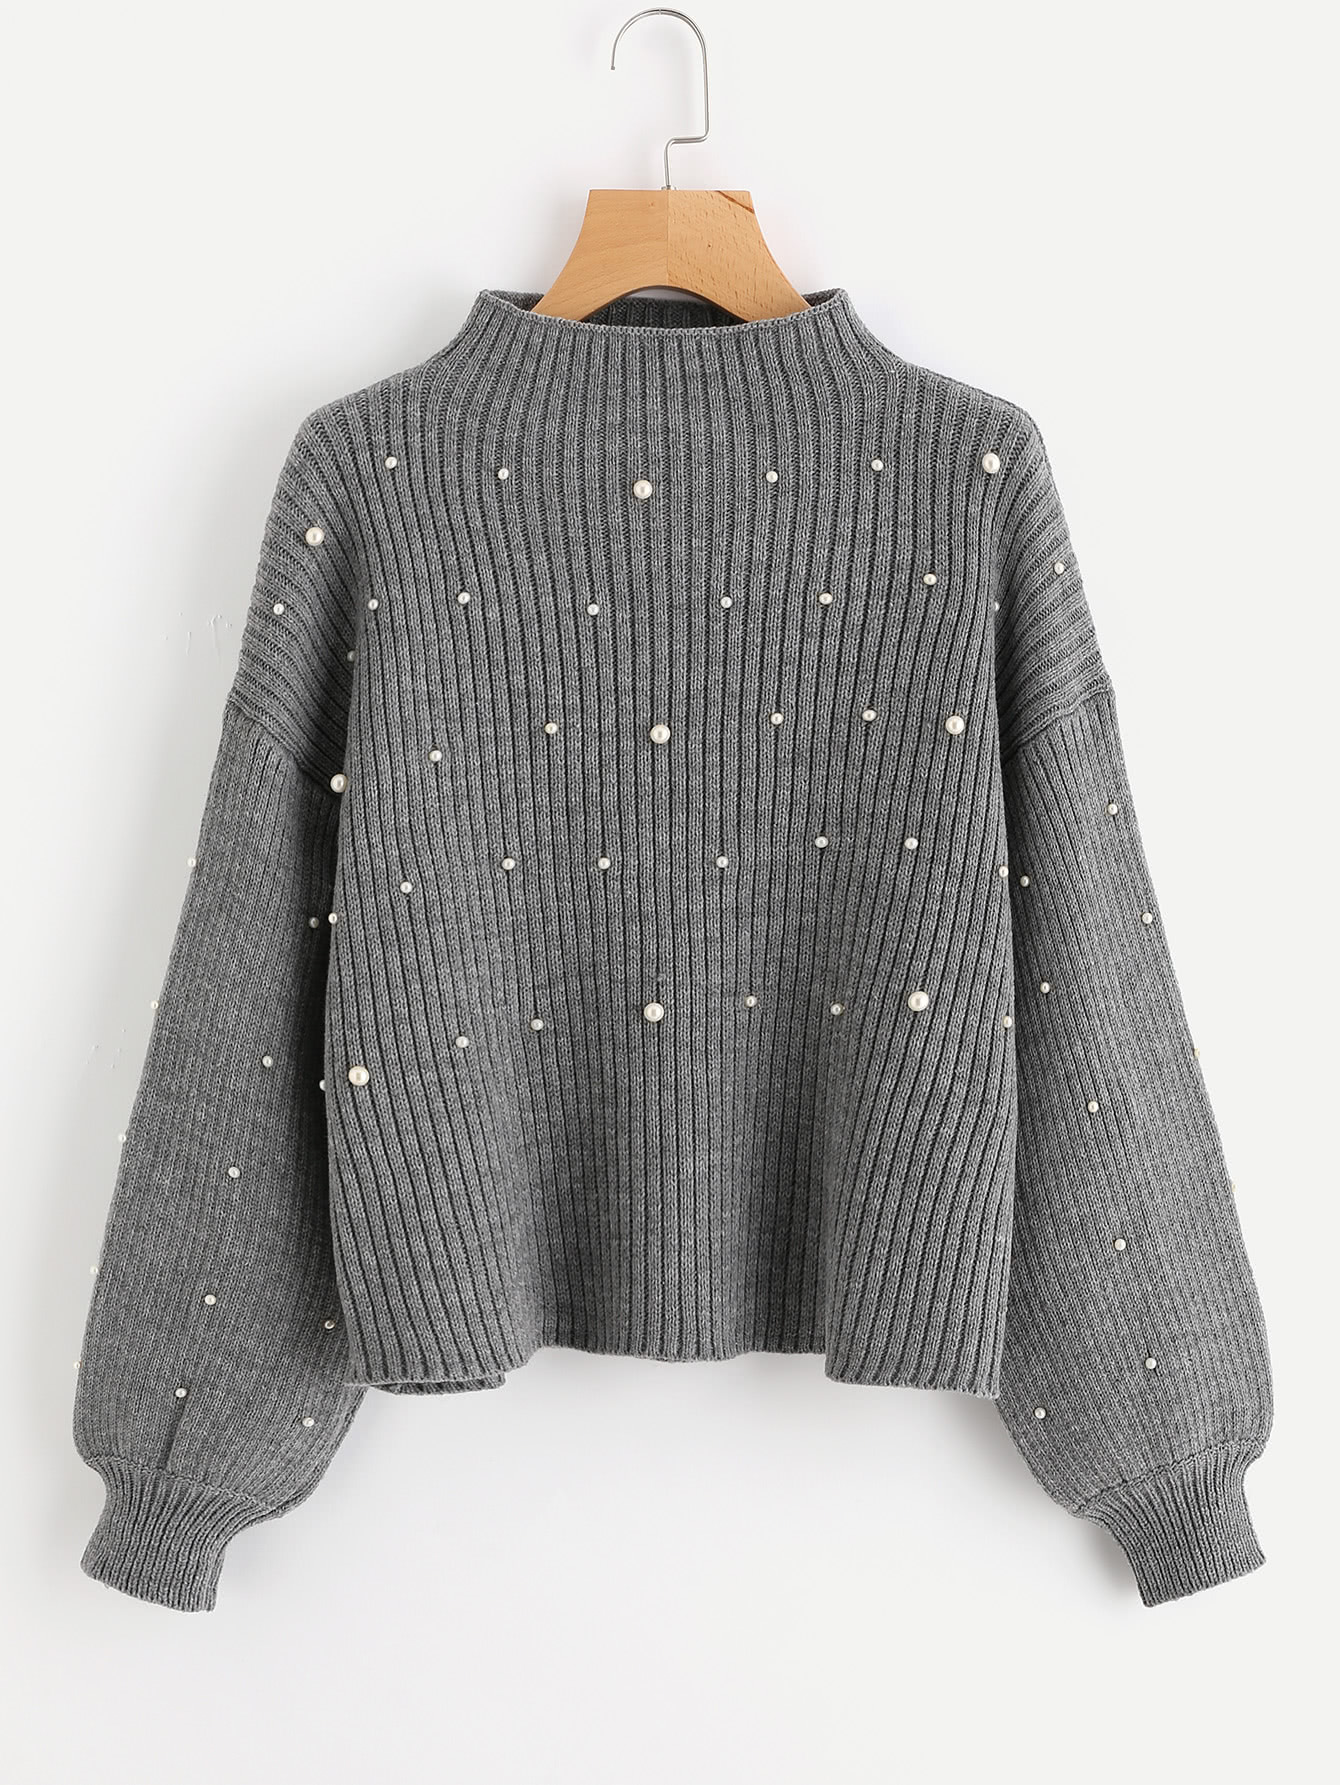 ee1f72df10 Shop Pearl Beaded Rib Knit Jumper online. SheIn offers Pearl Beaded Rib  Knit Jumper & more to fit your fashionable needs.